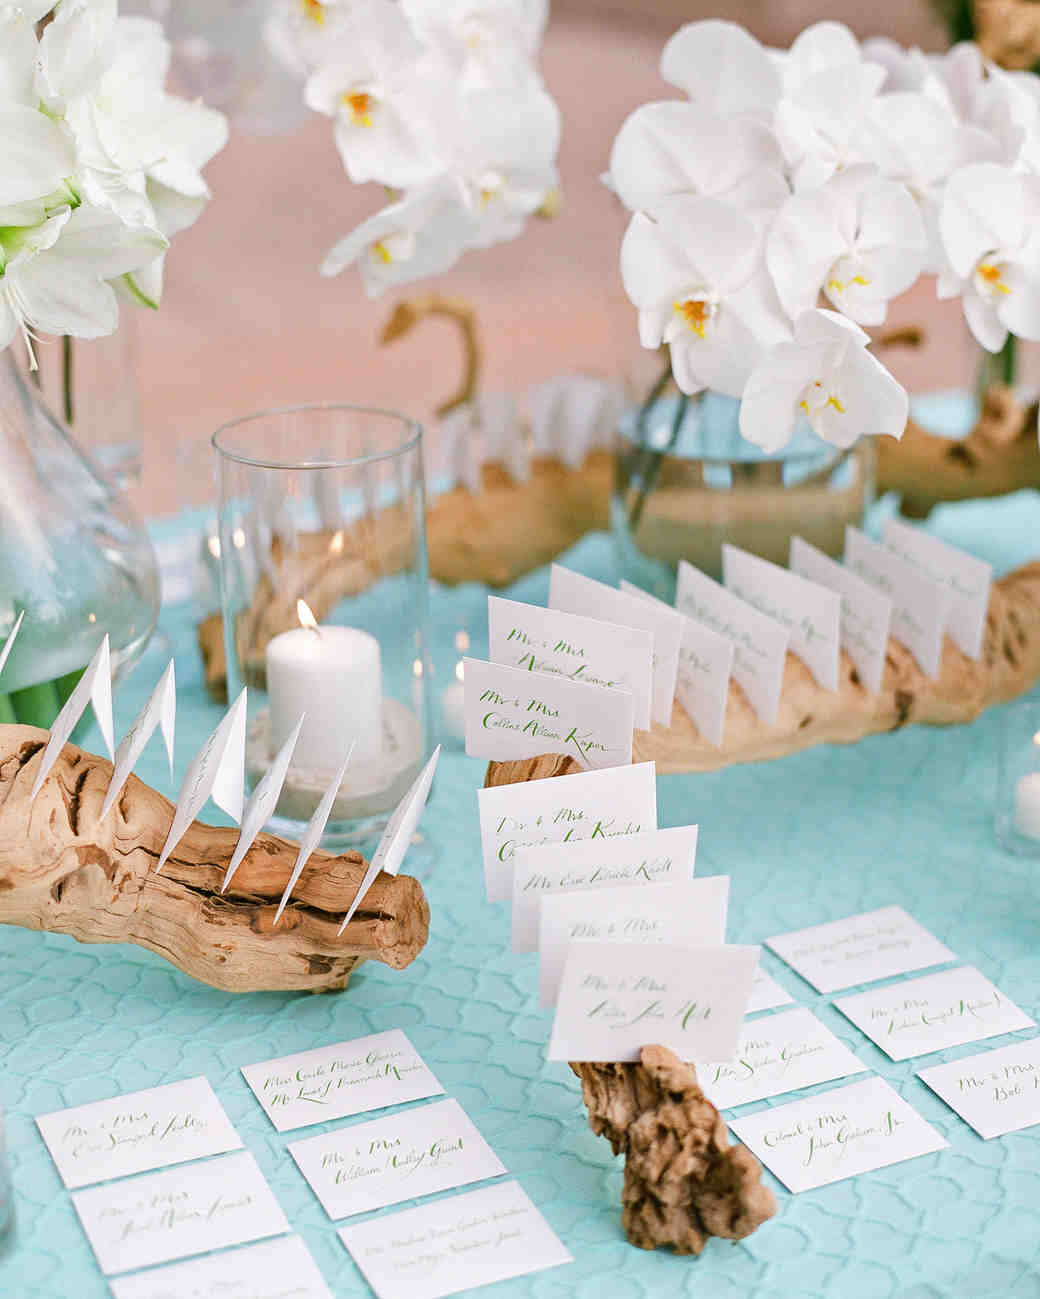 natalie jamey rehearsal dinner escort cards